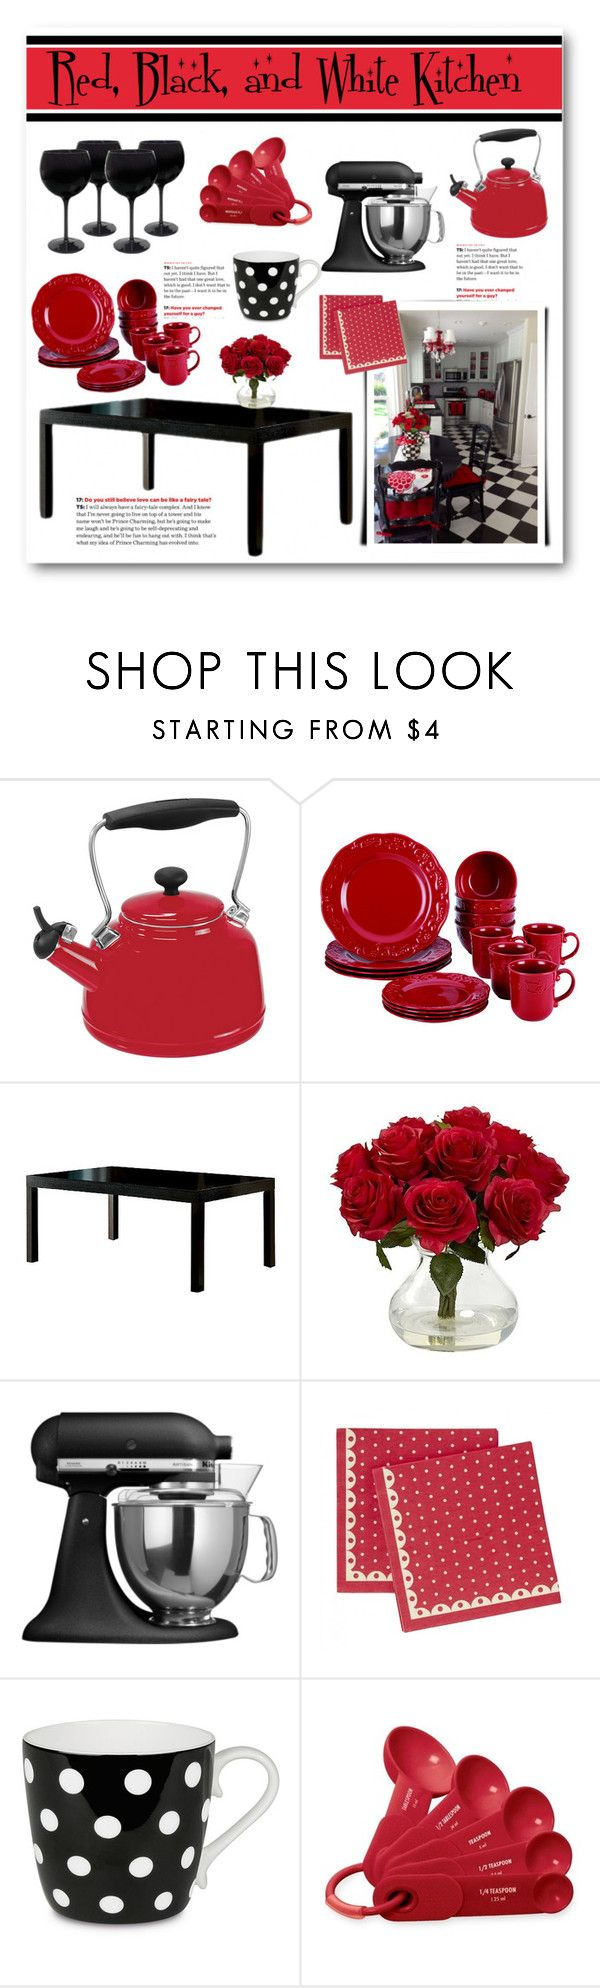 """""""Red, Black and White Kitchen"""" by lalalaballa22 ❤ liked on Polyvore featuring interior, interiors, interior design, home, home decor, interior decorating, Chantal, BonJour, Furniture of America and Nearly Natural"""